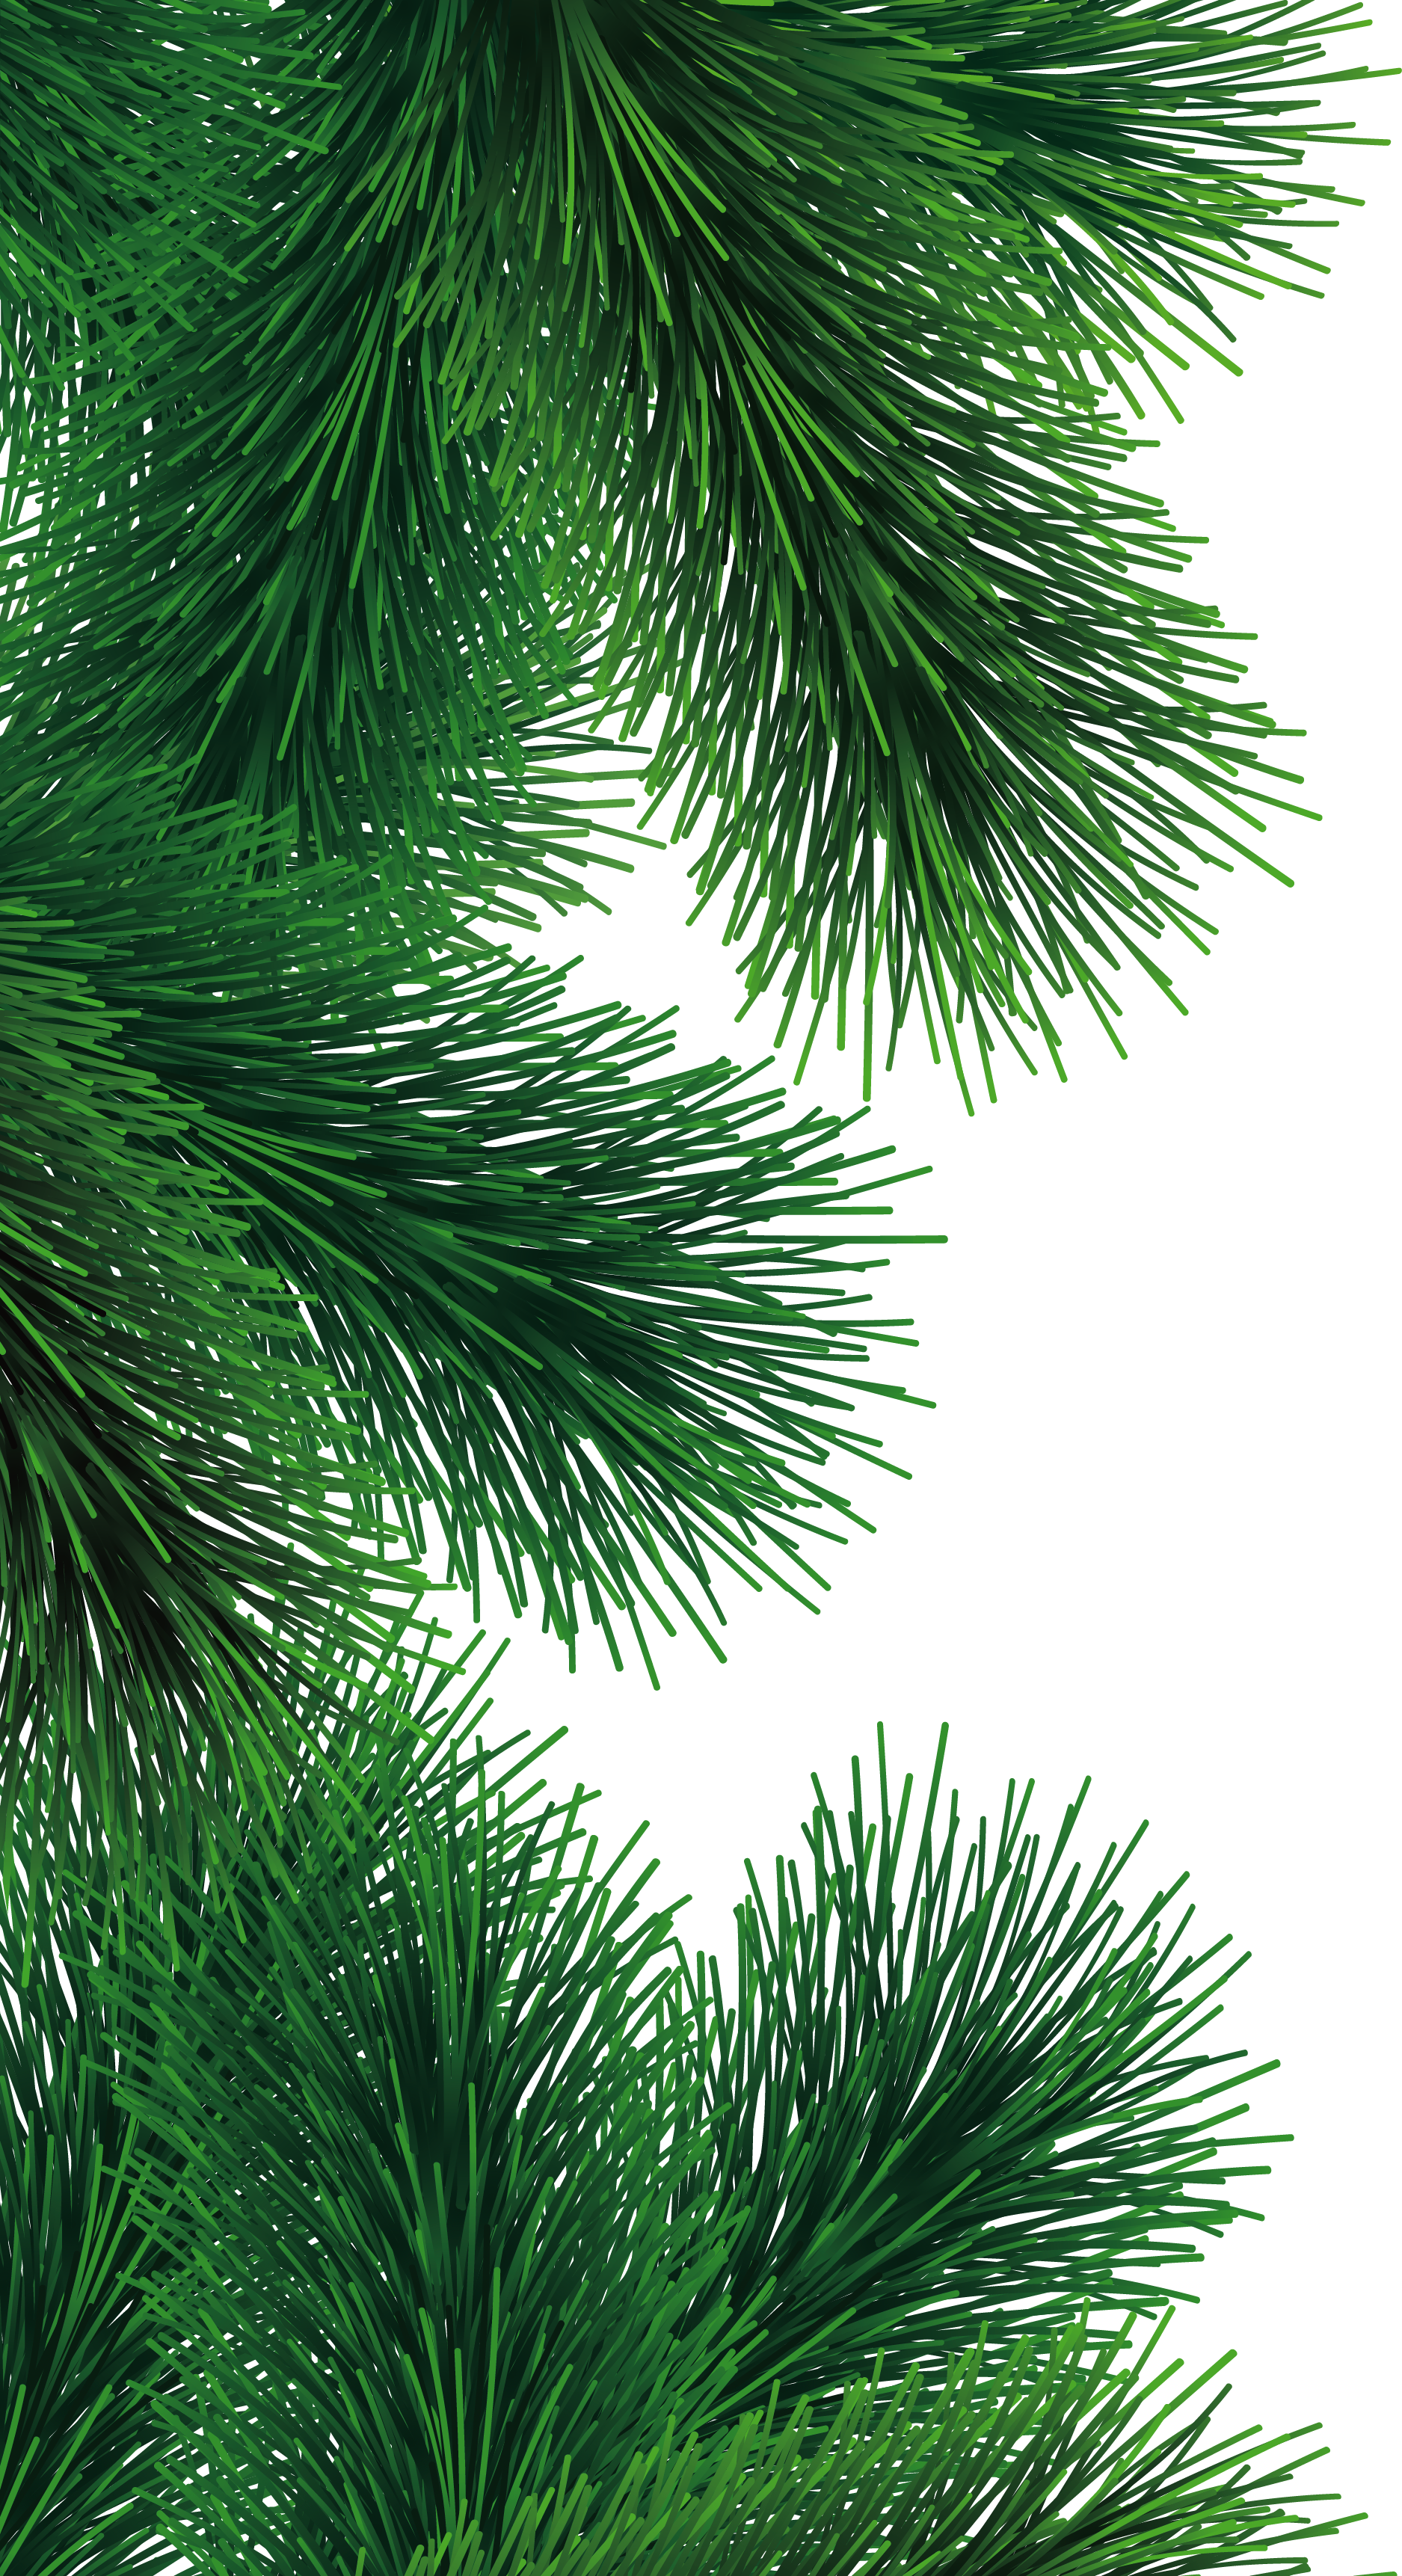 Pine tree branch clipart image freeuse Fir-tree PNG images, free download picture image freeuse